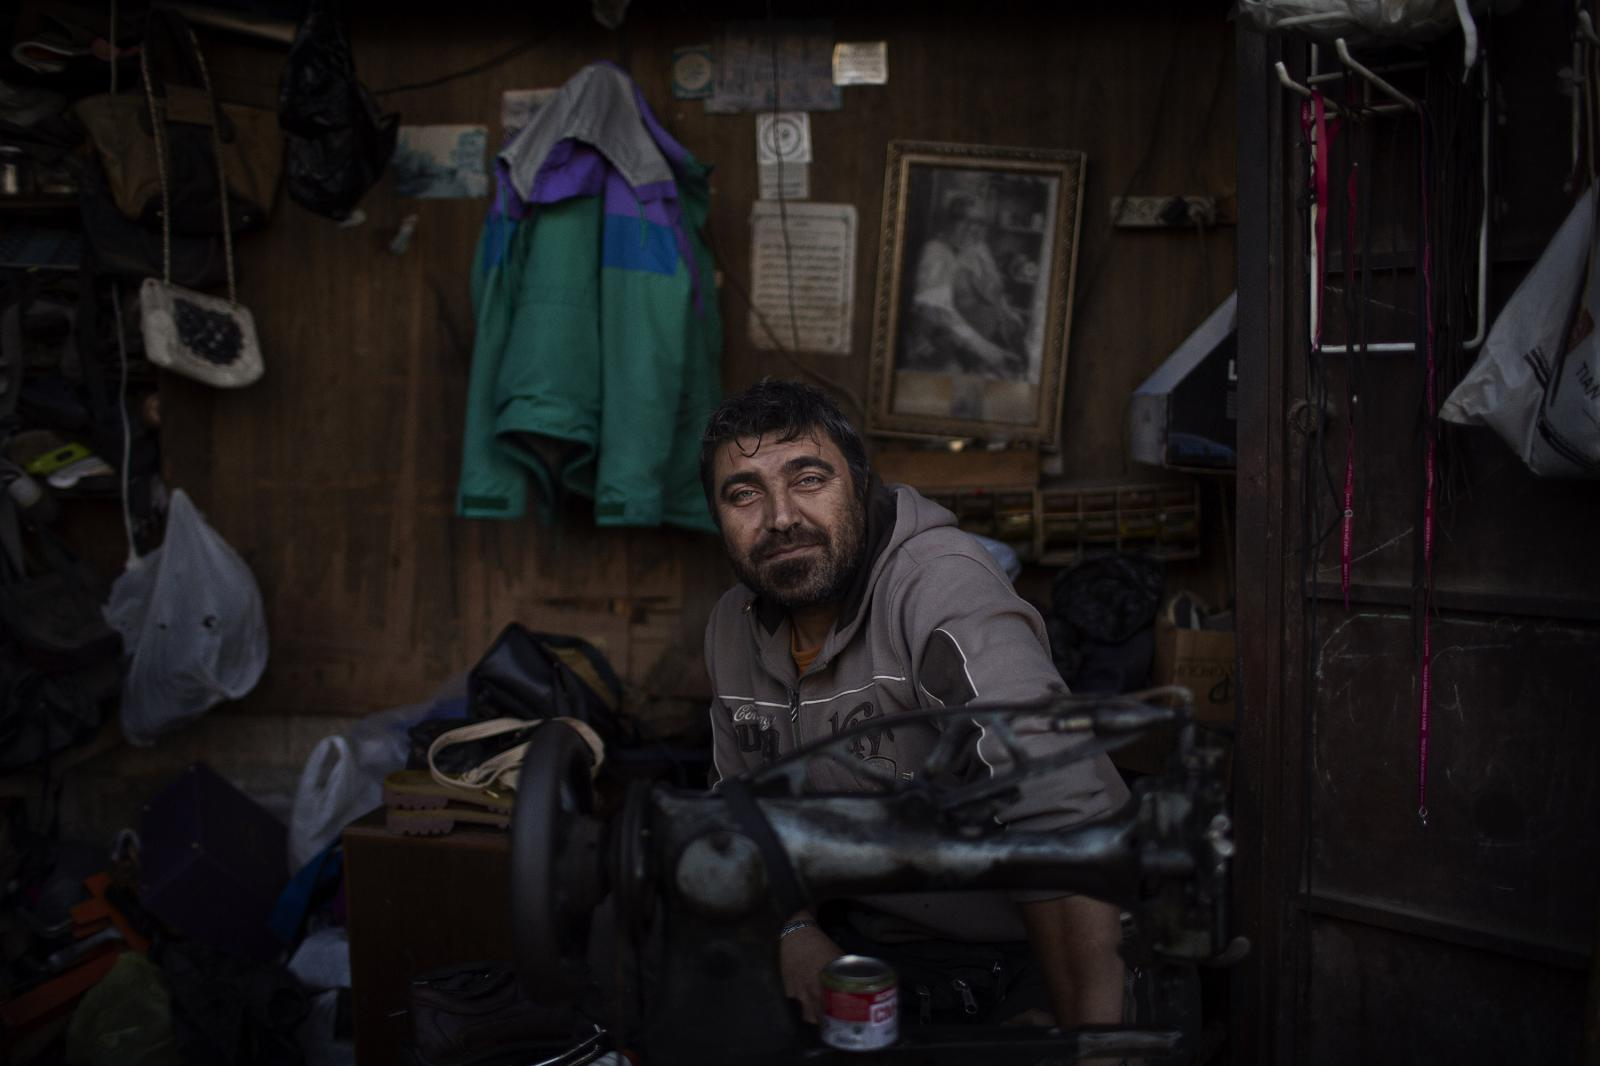 Yahya Shamel, shoe repairman: I inherited this business from my father. He's had it for about 40 years. Currently the situation isn't good. People are very tired. Expenses are rising. None of our representatives' care about us. We tell the politicians, with all our respect, that if you're up for fixing this, then let new young people come and take over. People in Lebanon want to live together in peace. Sectarianism is an illusion that is the creation of our leaders. It doesn't exist at all. They created this boogeyman. Tripoli. Lebanon. December 11th, 2019. Diego Ibarra Sánchez for CNN